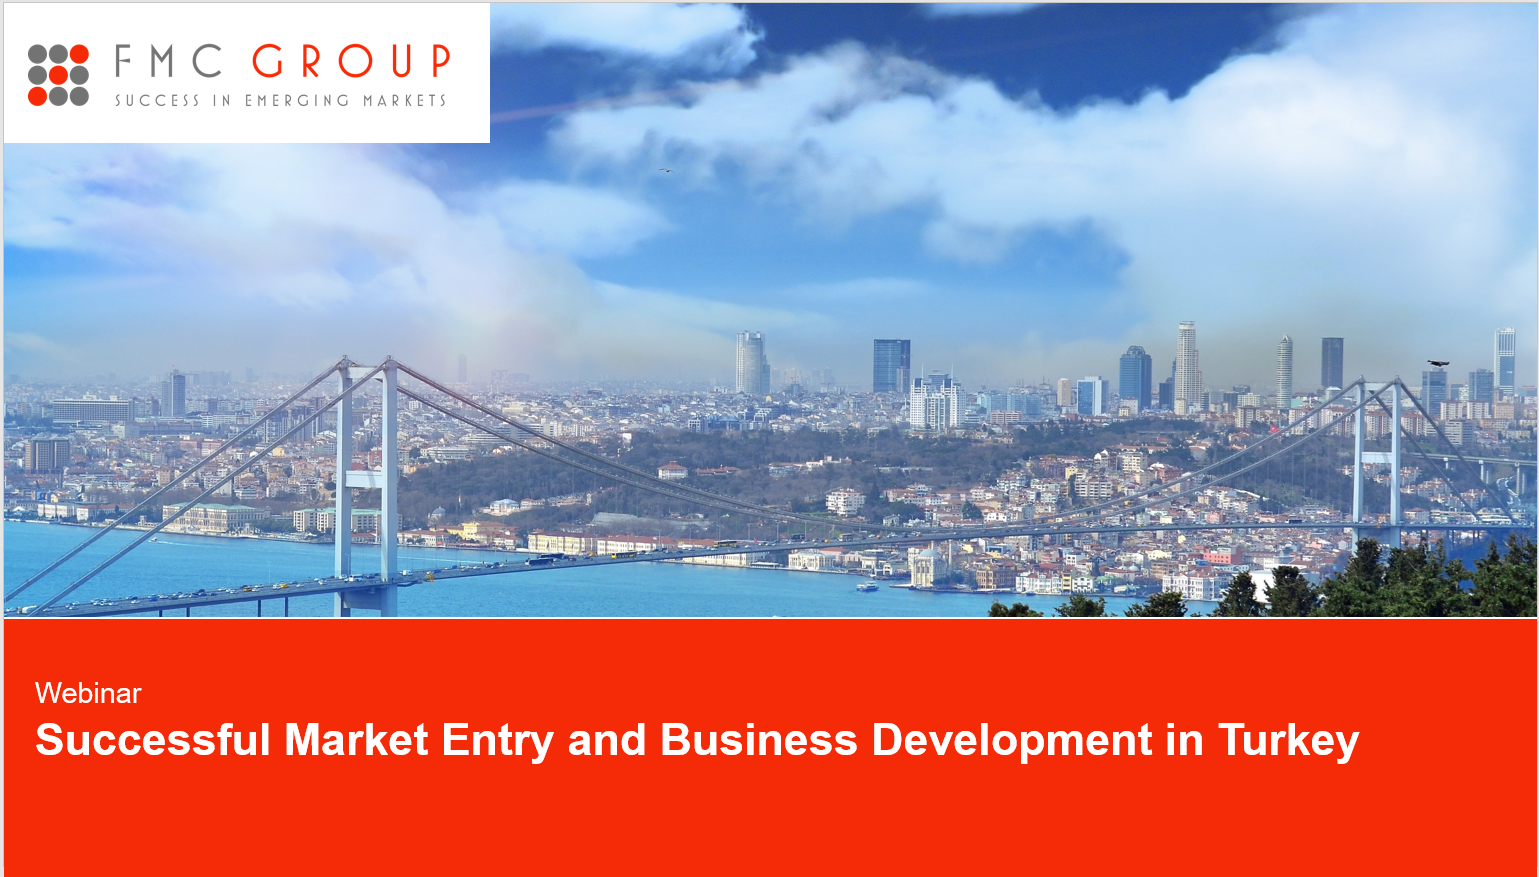 """Cover page of Webinar """"Successful Market Entry and Business Development in Turkey"""""""